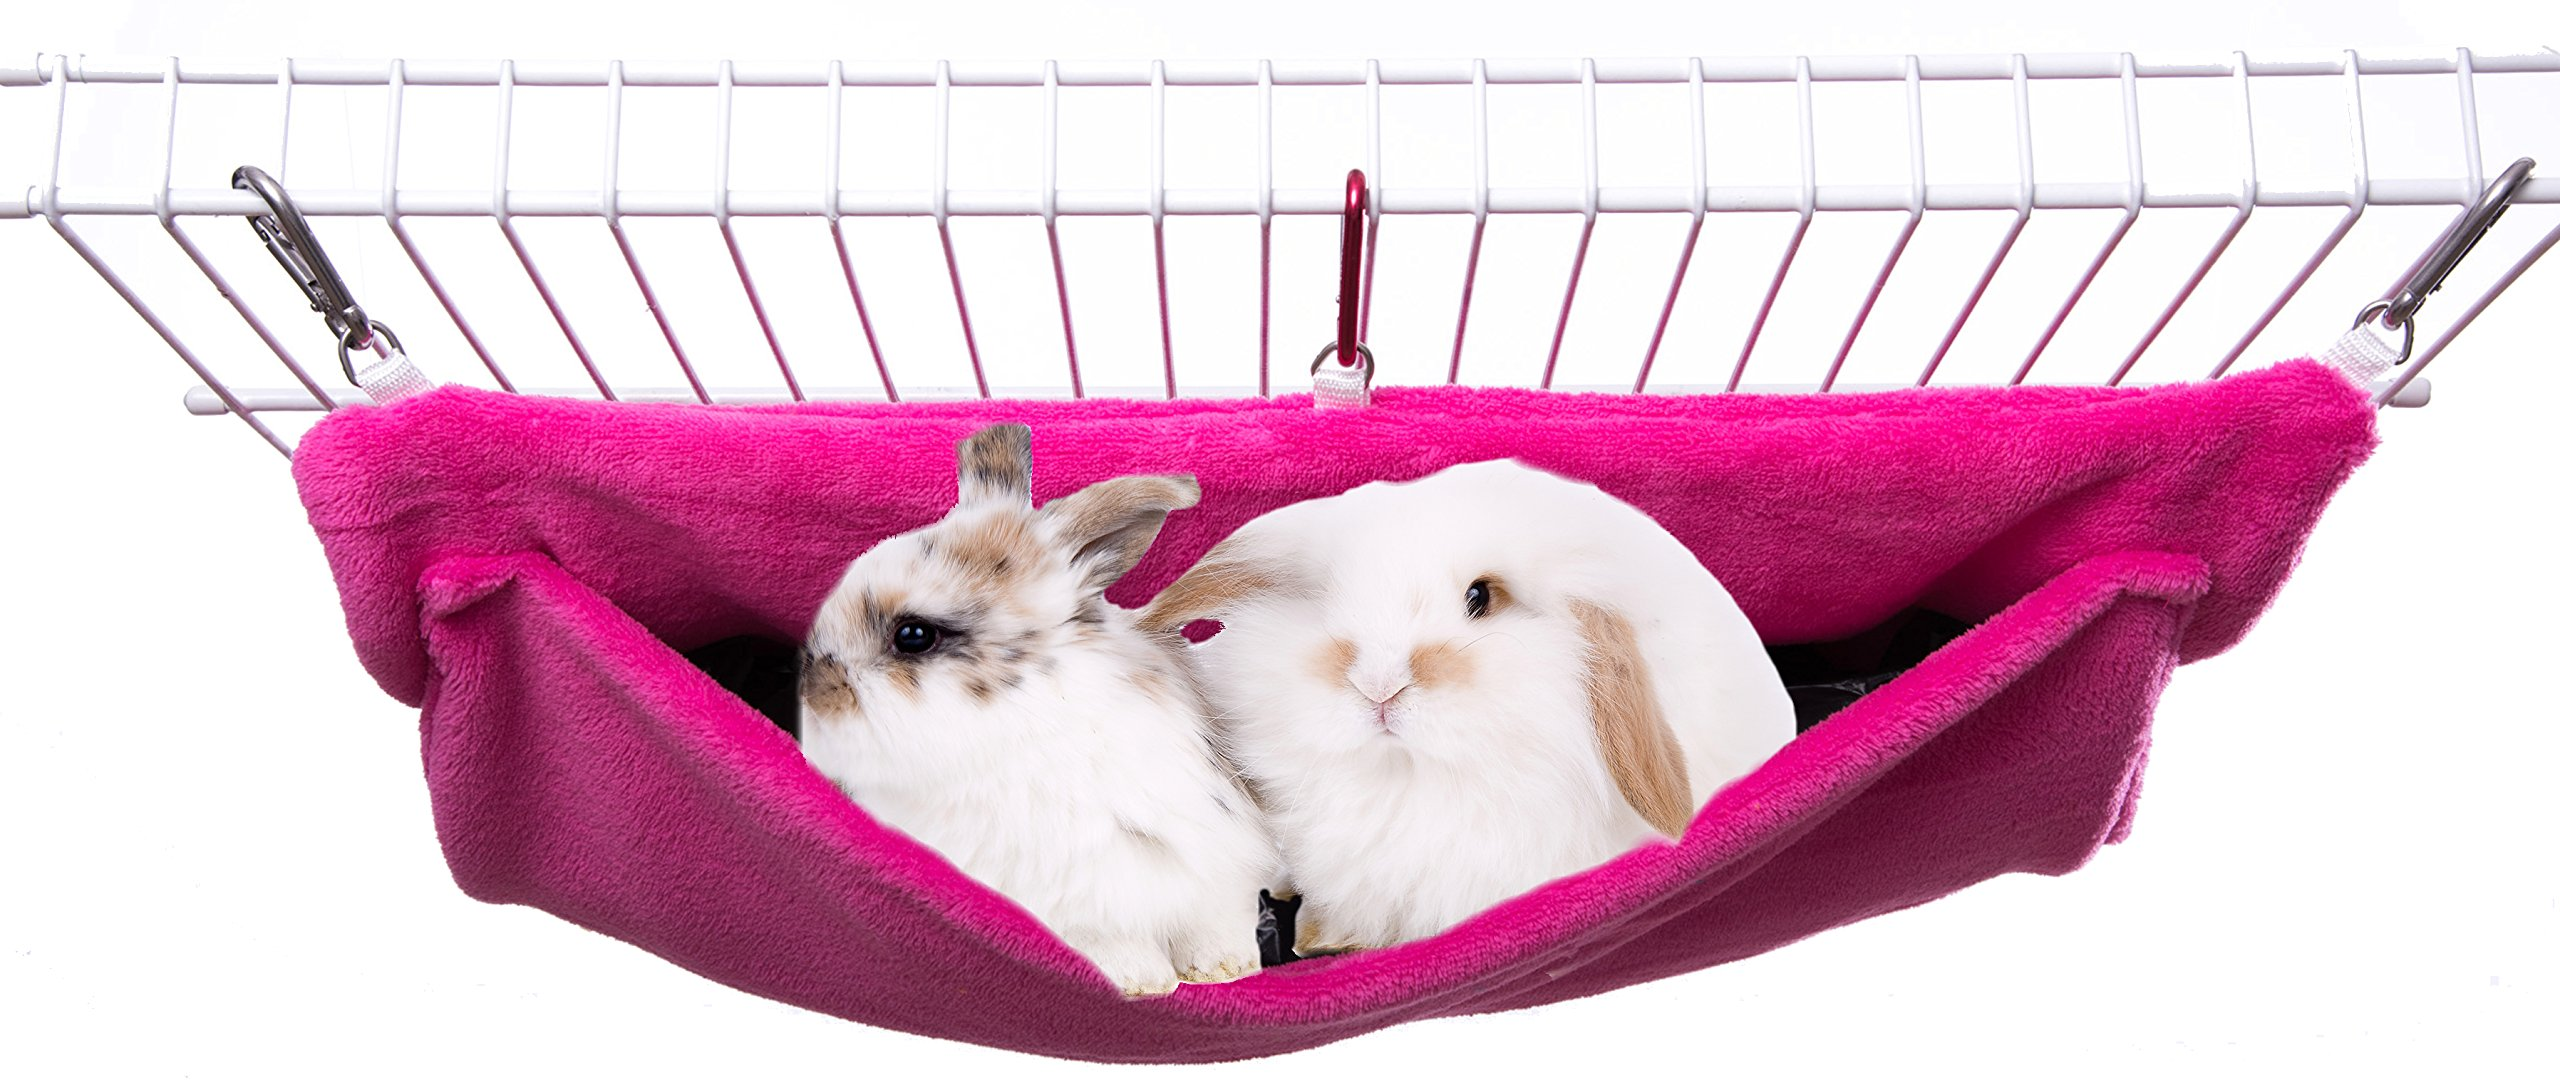 Avianweb Ferret or Bunny Pocket Hammock - Made in The USA (Rose)